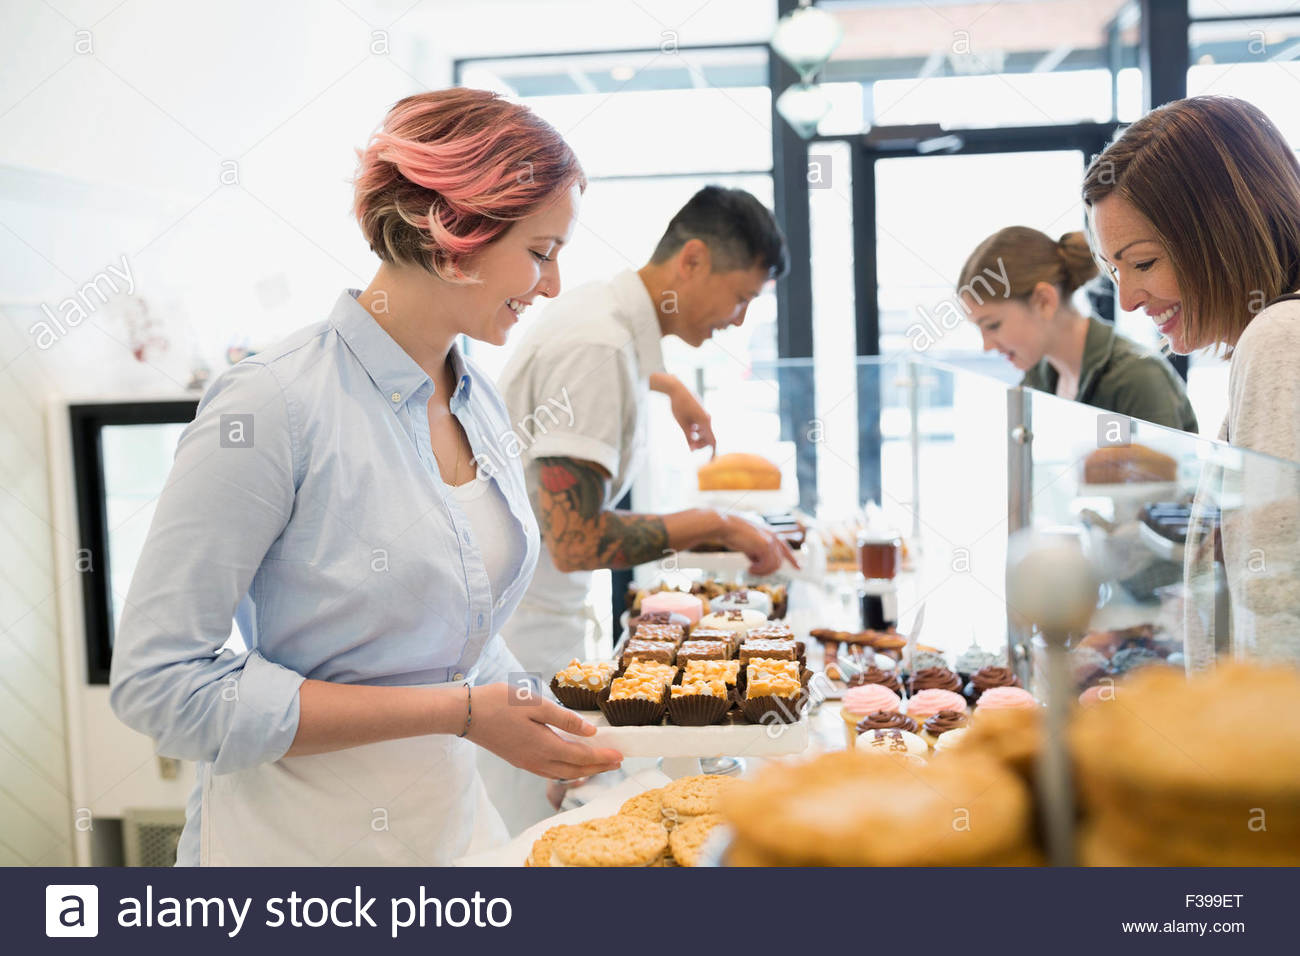 Worker serving woman pastries in bakery - Stock Image